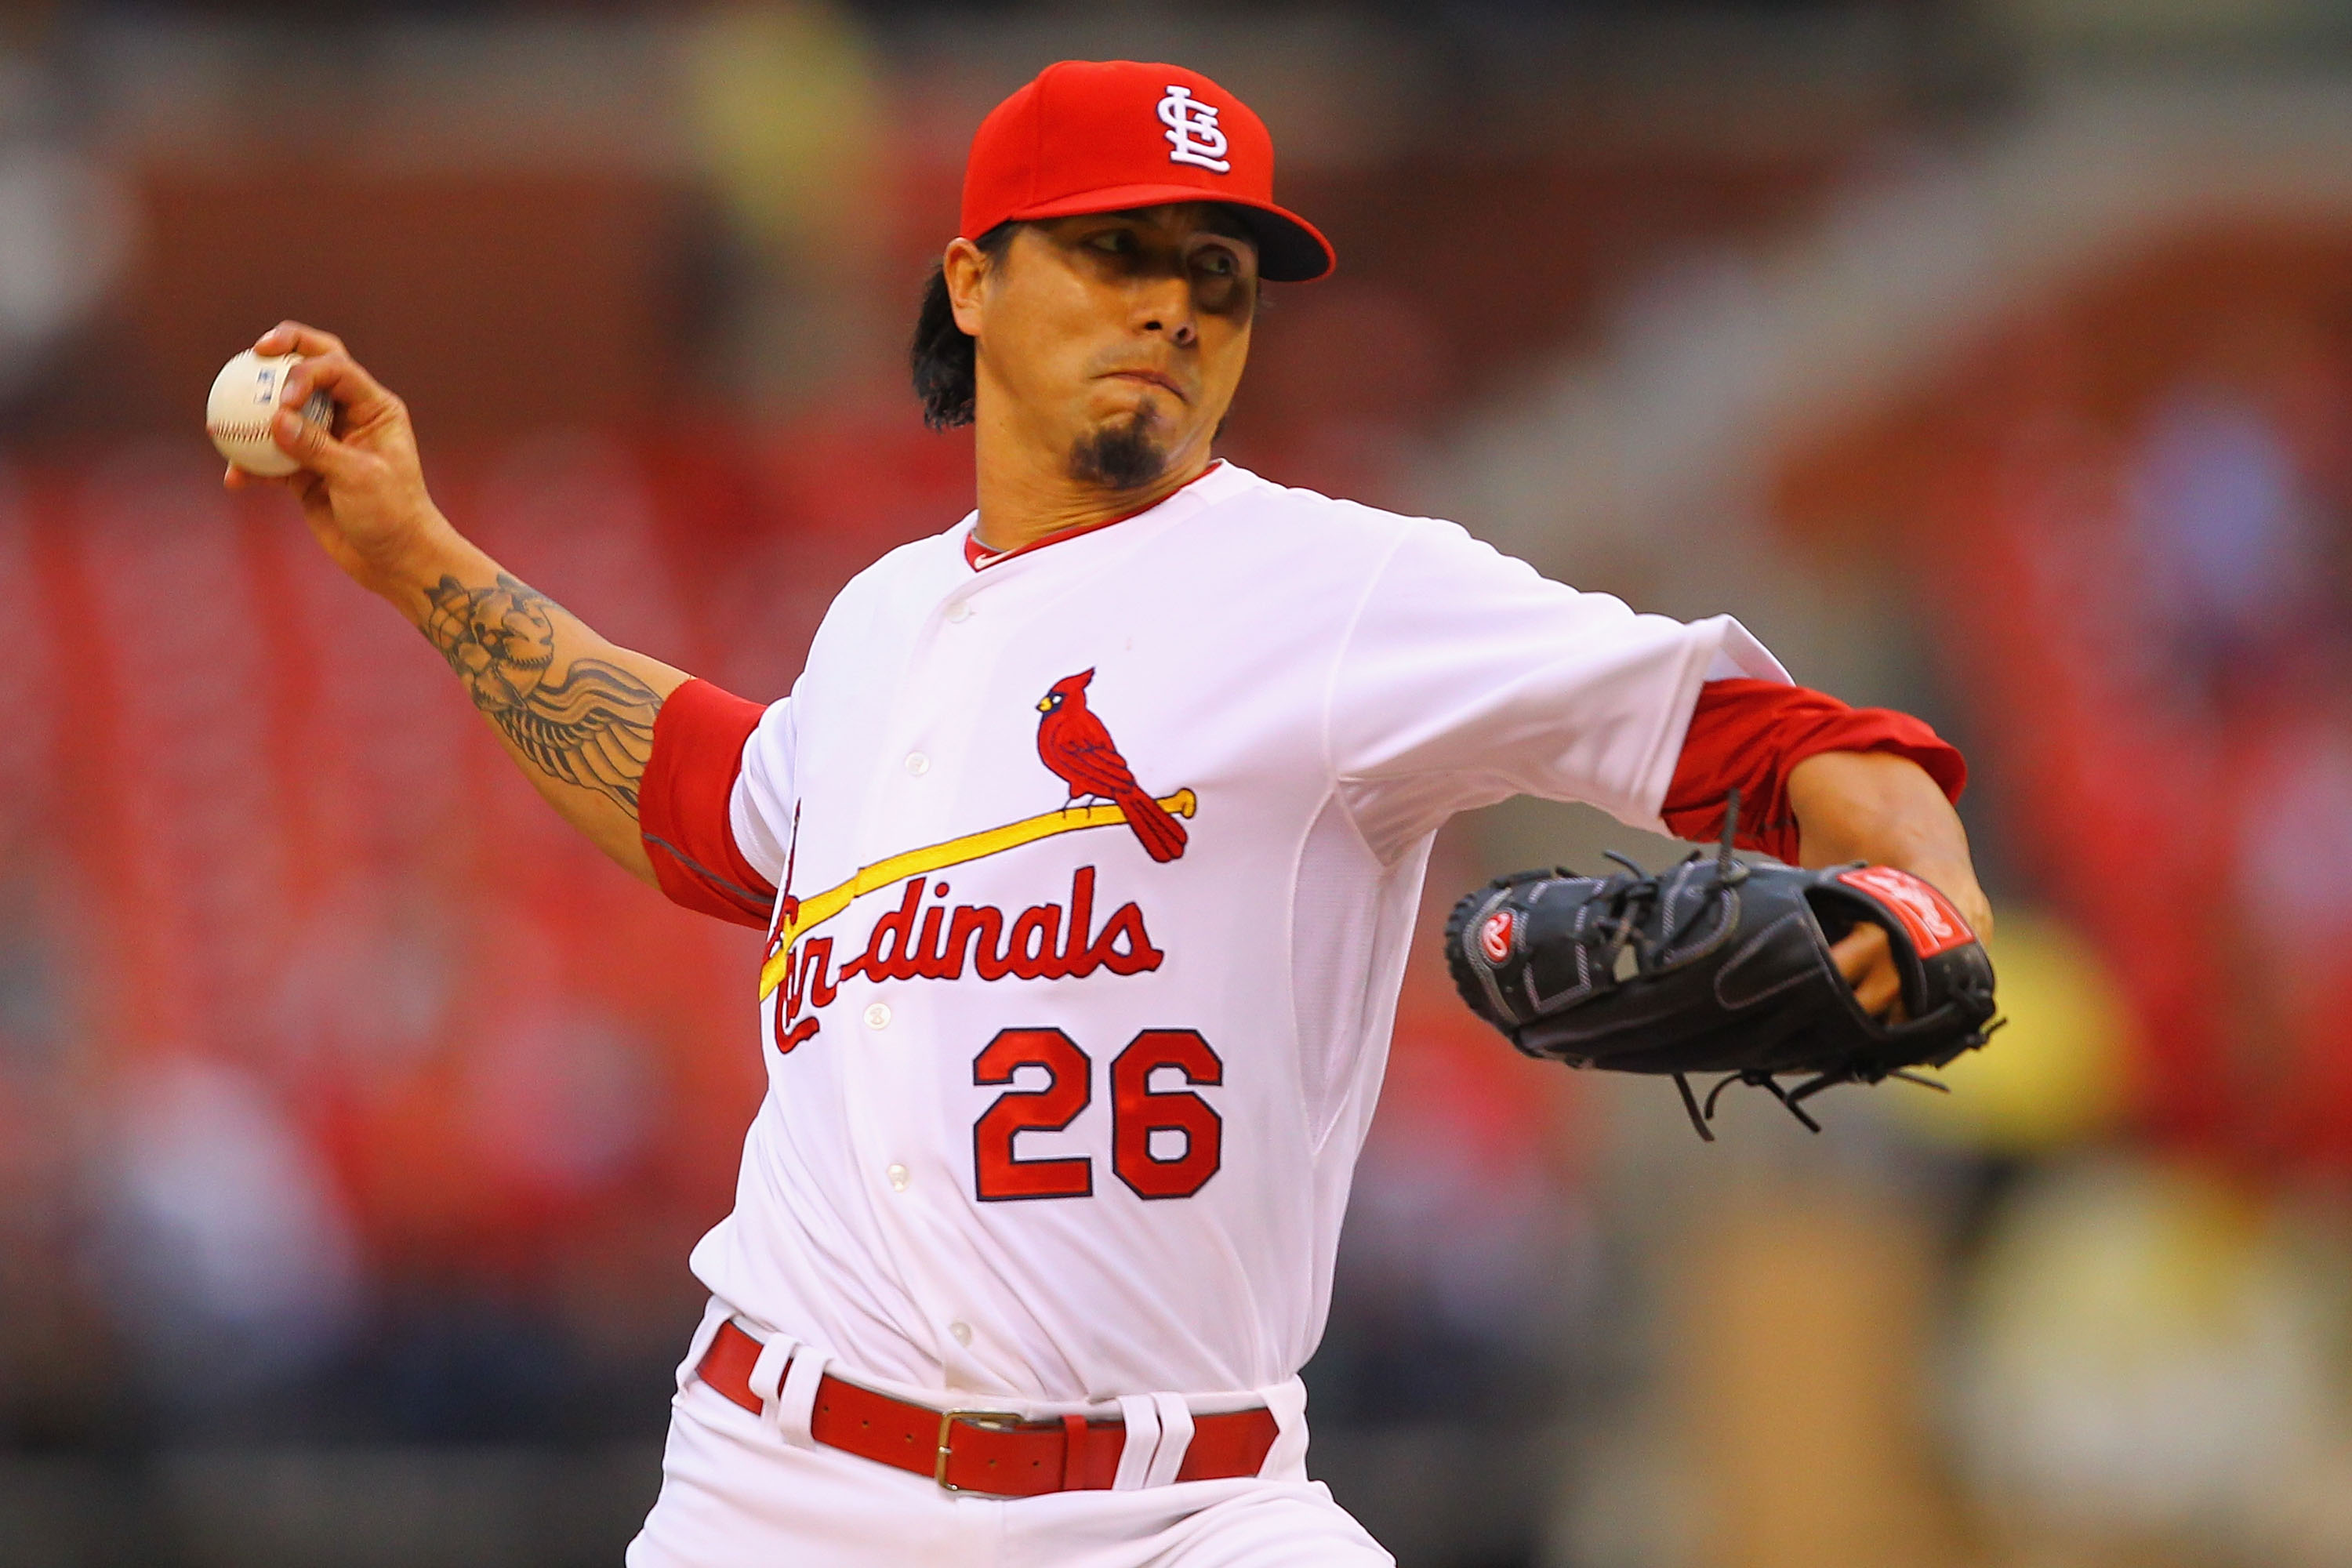 ST. LOUIS, MO - MAY 18: Starter Kyle Lohse #26 of the St.Louis Cardinals pitches against the Houston Astros at Busch Stadium on May 18, 2011 in St. Louis, Missouri.  (Photo by Dilip Vishwanat/Getty Images)